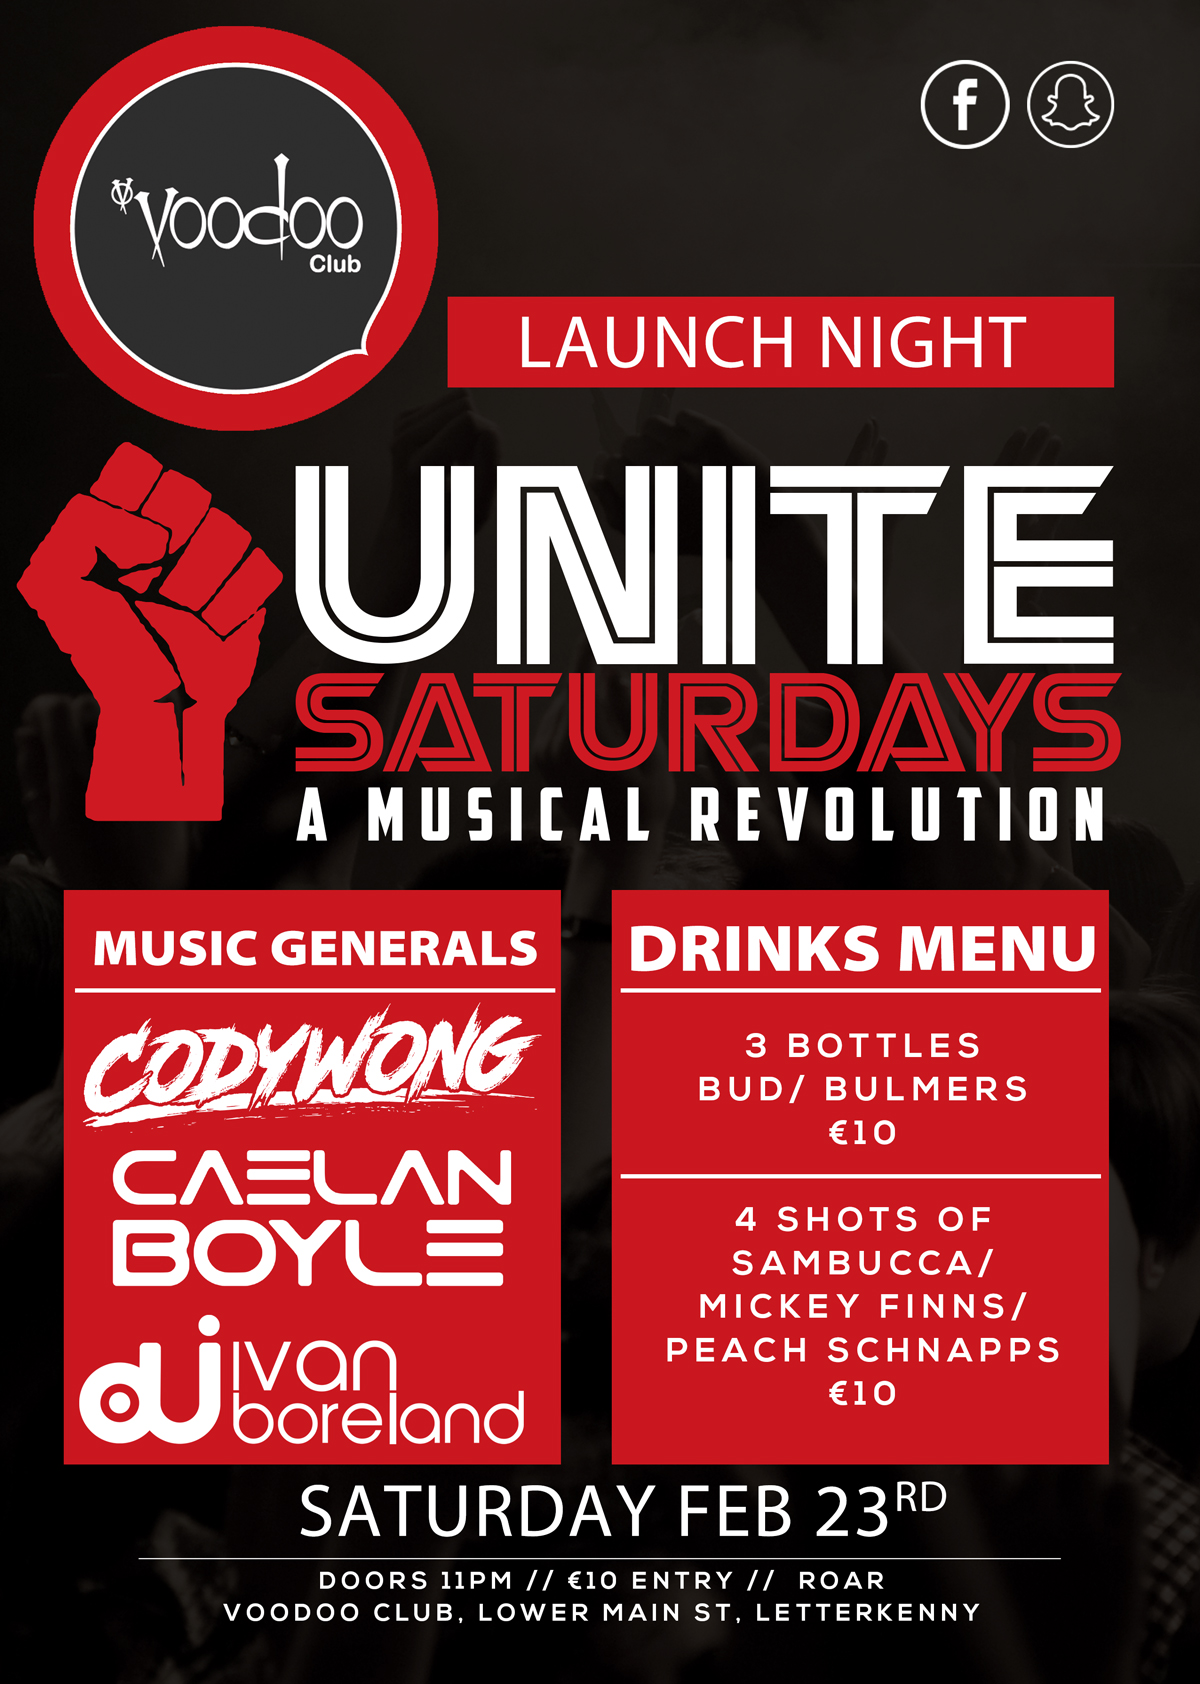 voodoo-venue---unite-saturdays-launch-night---sat-feb-23-2019-WITH-DJAS.jpg